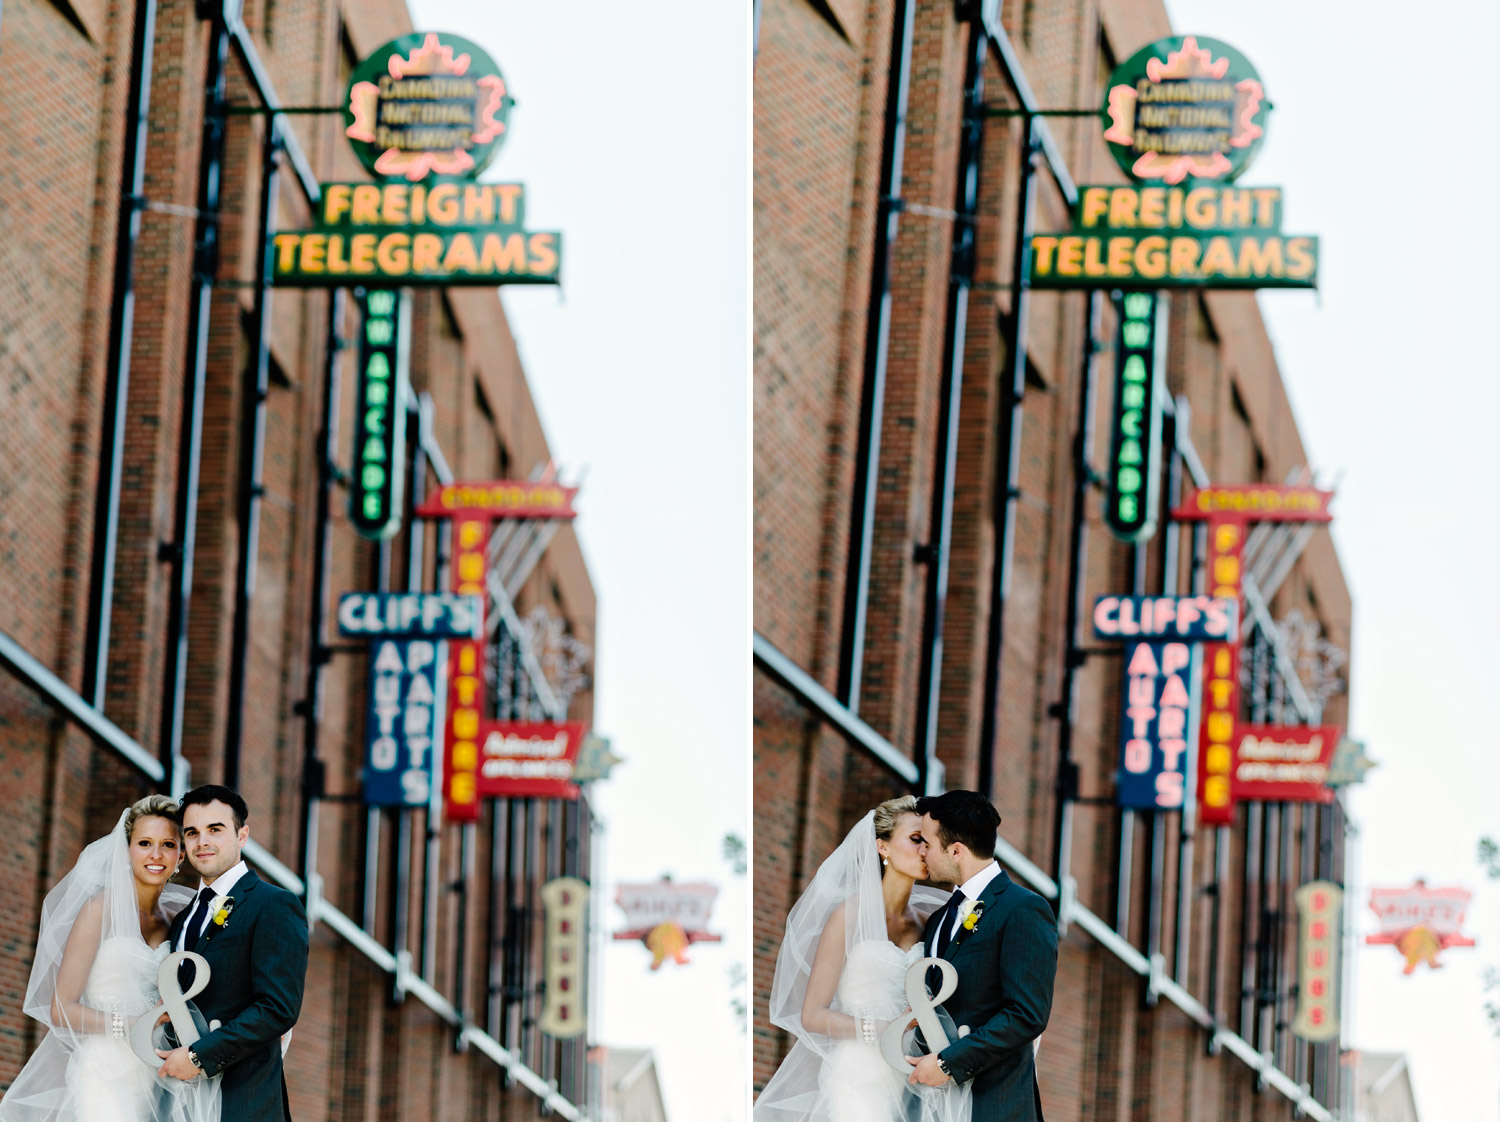 Urban Wedding Photography - Ashley and Jesse 0030.JPG